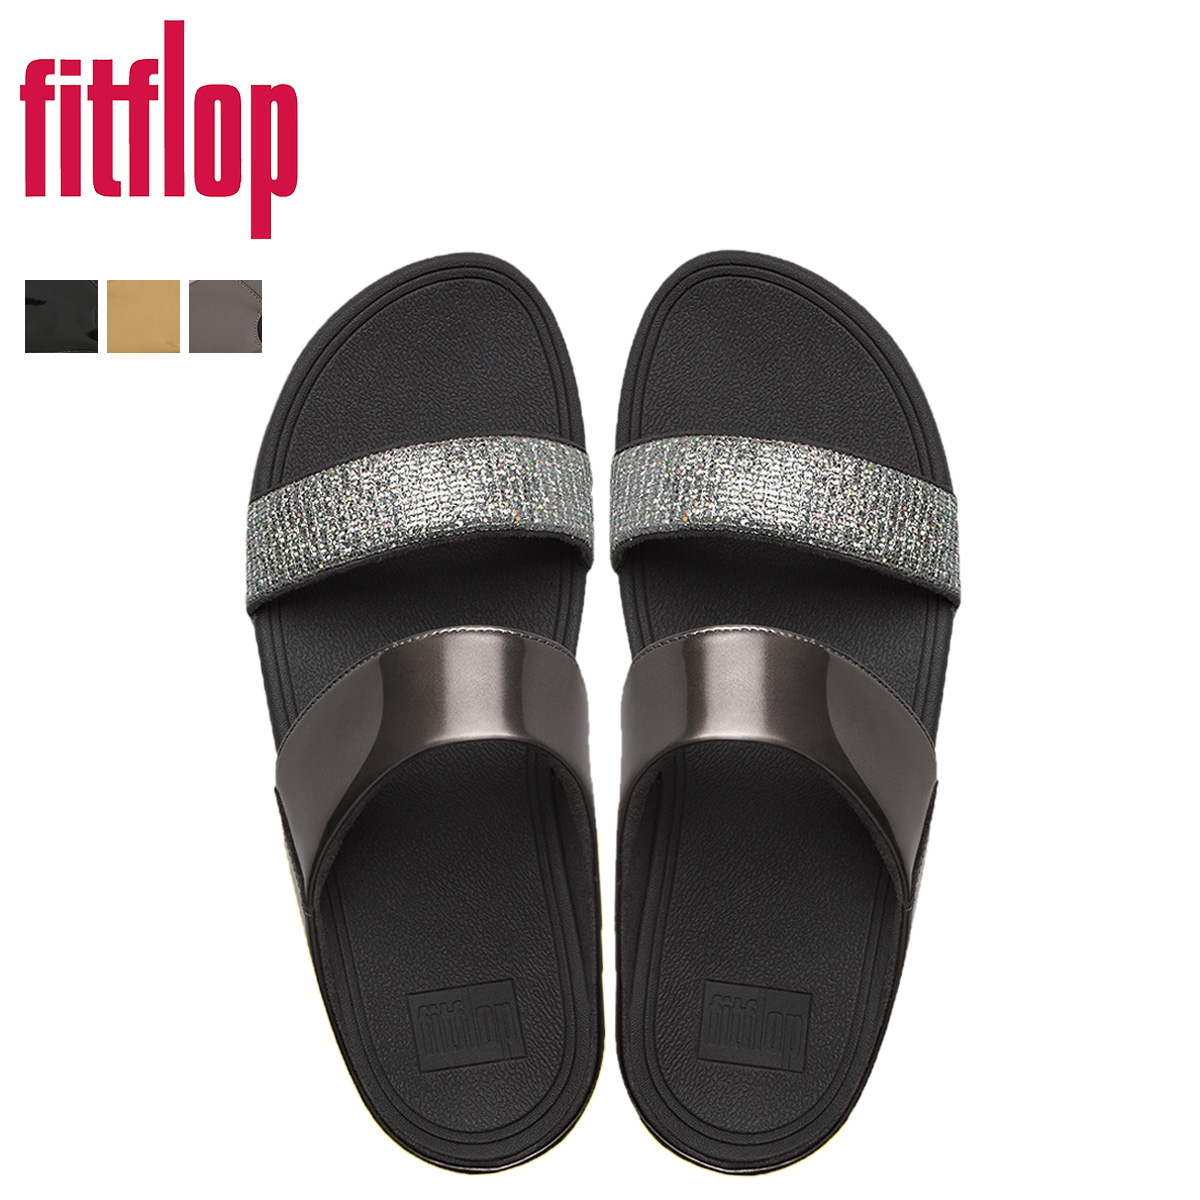 d62bd9649 ... the density put a diverse focus on the fit flop Sandals first. New  generation footwear brand revolutionized the modern shoe industry does not  understand ...